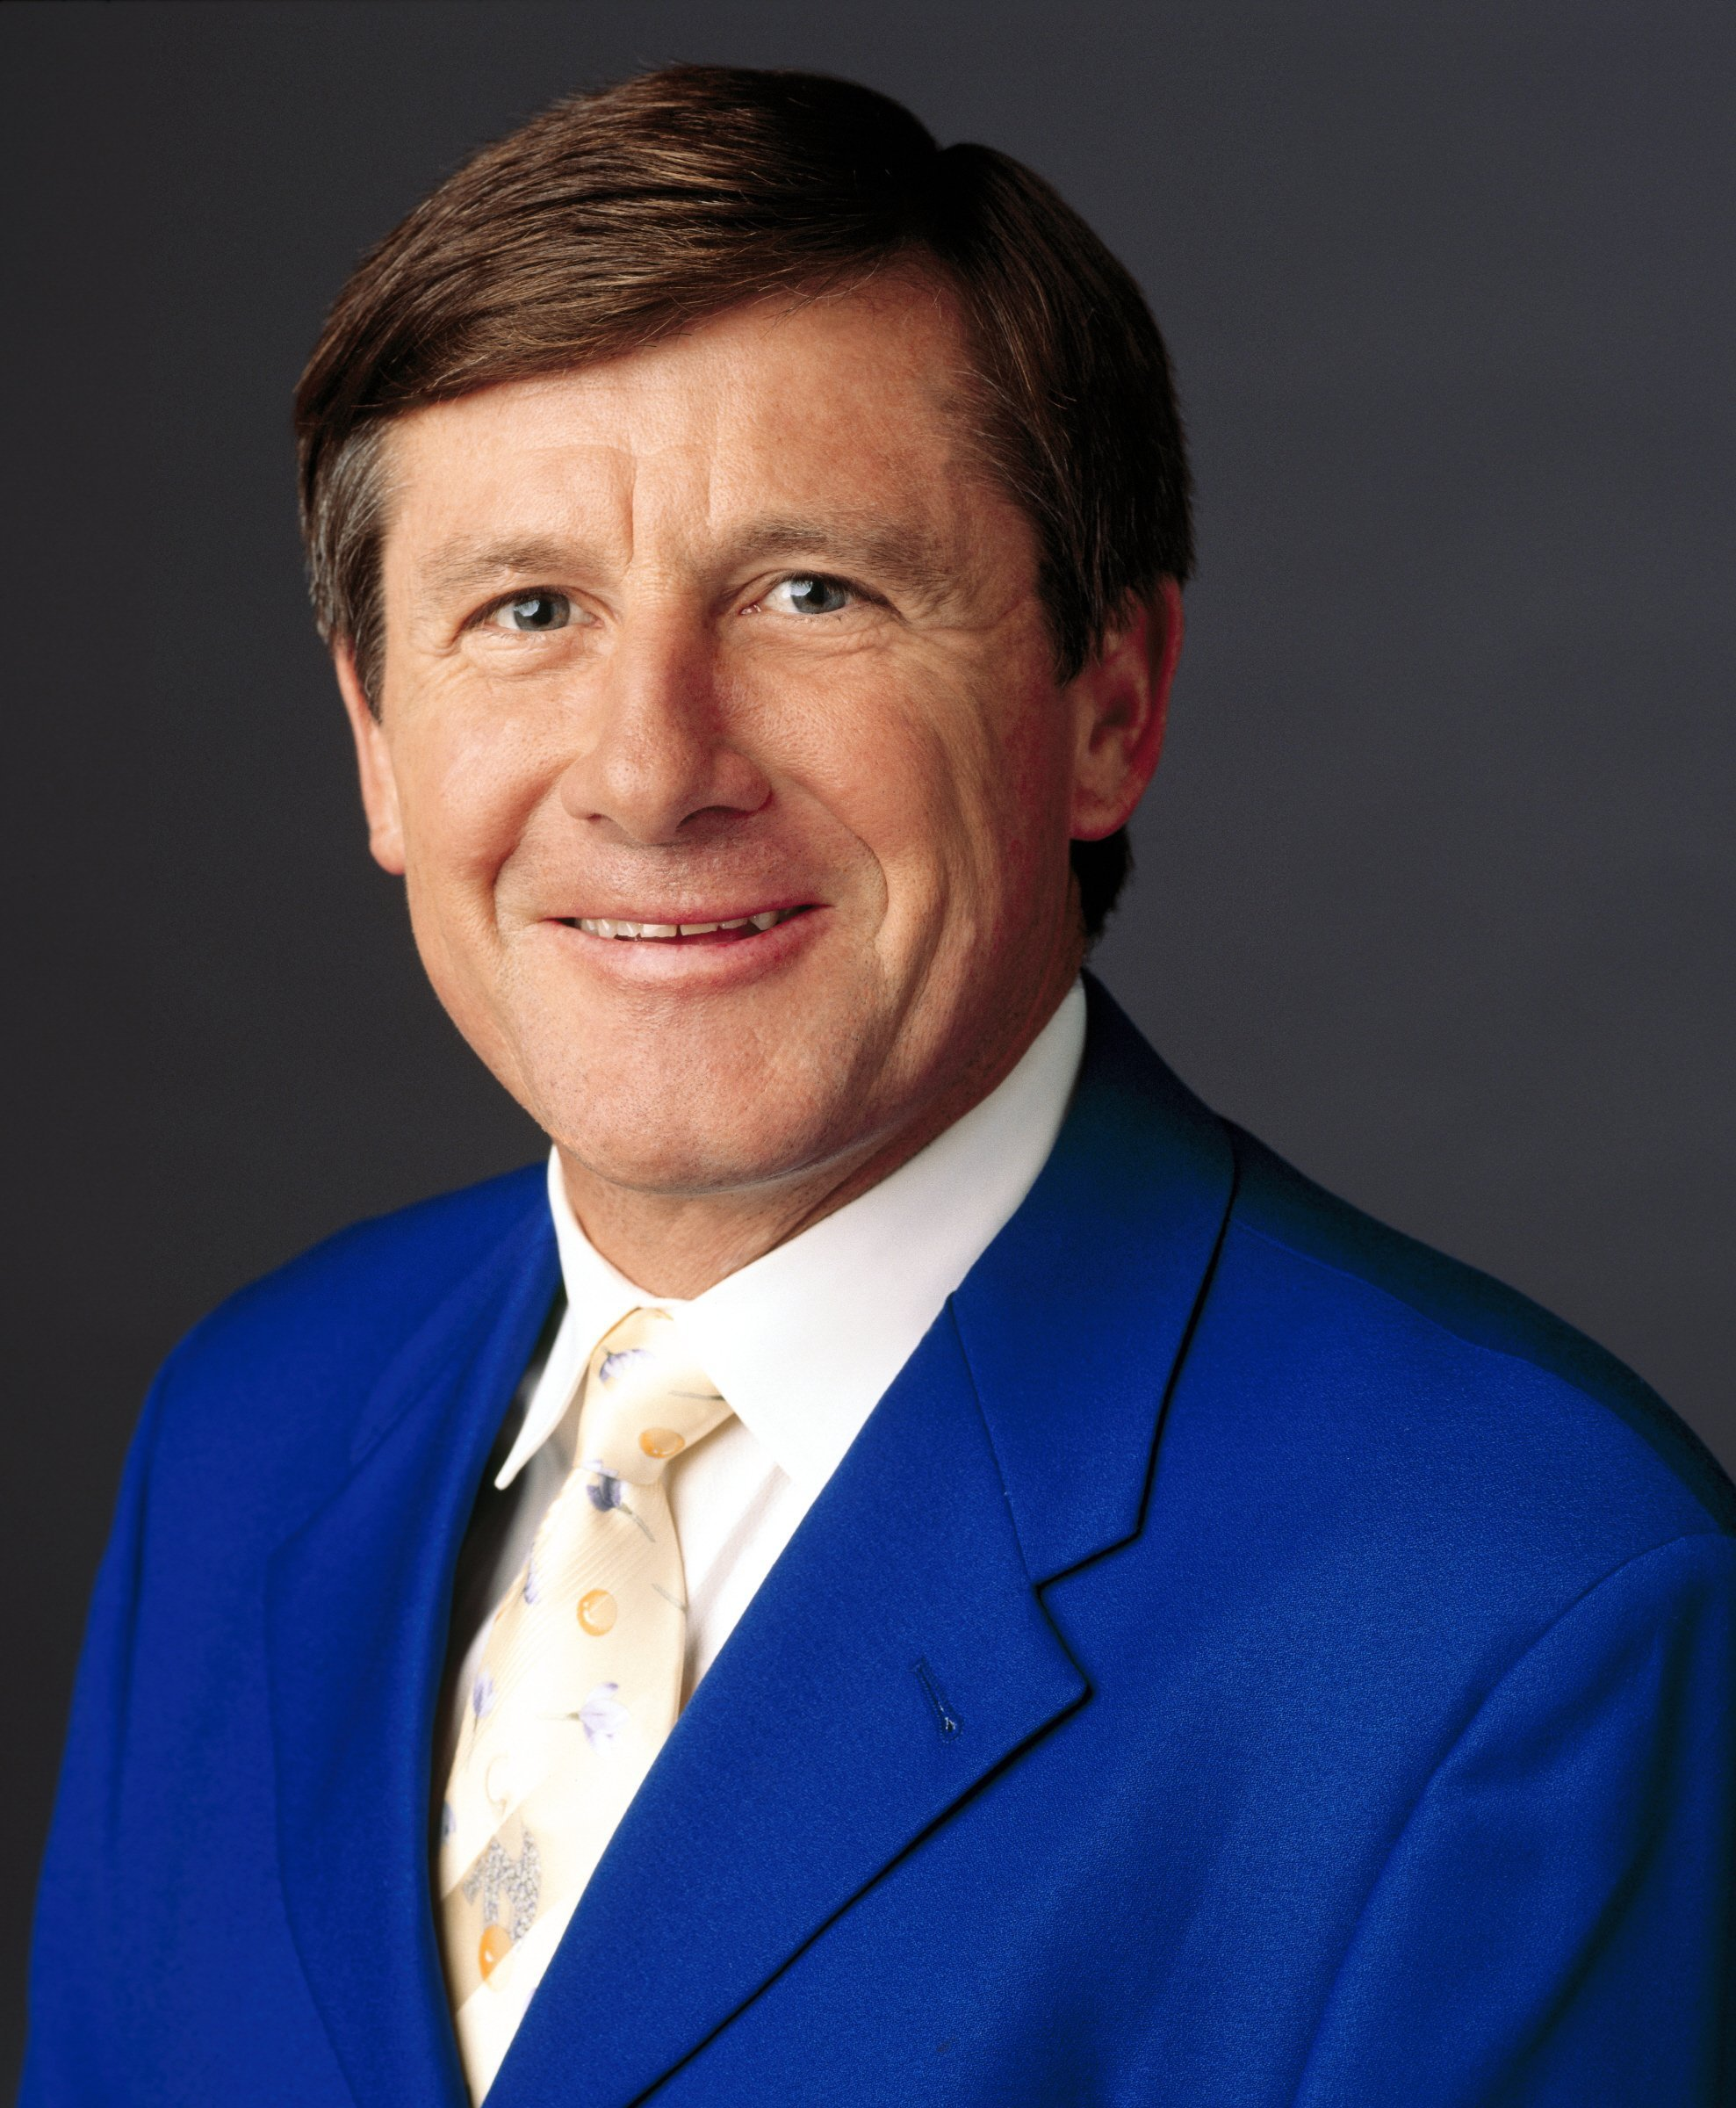 Craig Sager, the longtime Turner Sports sideline reporter best known for his colorful -- and at times fluorescent -- wardrobe, has passed away after battling acute myeloid leukemia, the network said. He was 65.